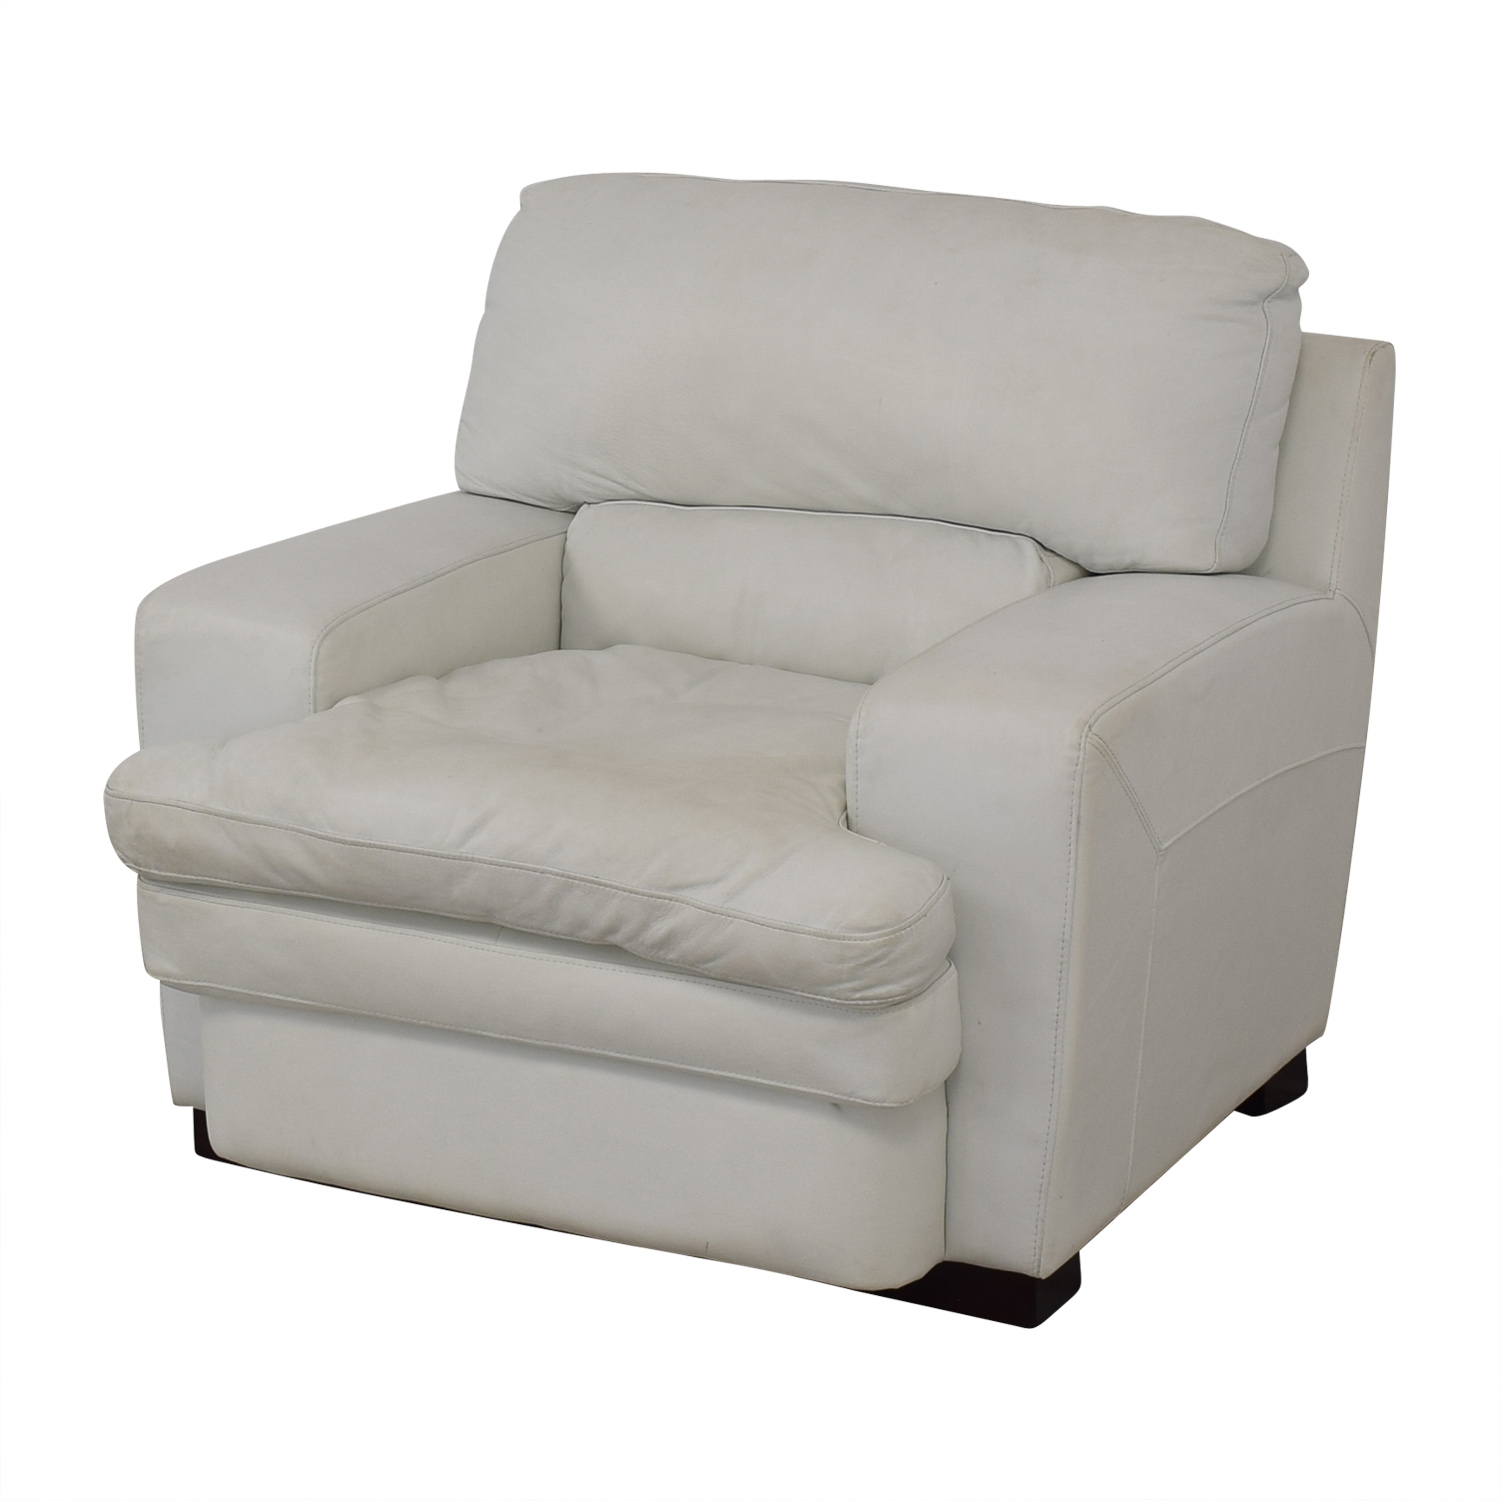 Overstuffed White Armchair dimensions